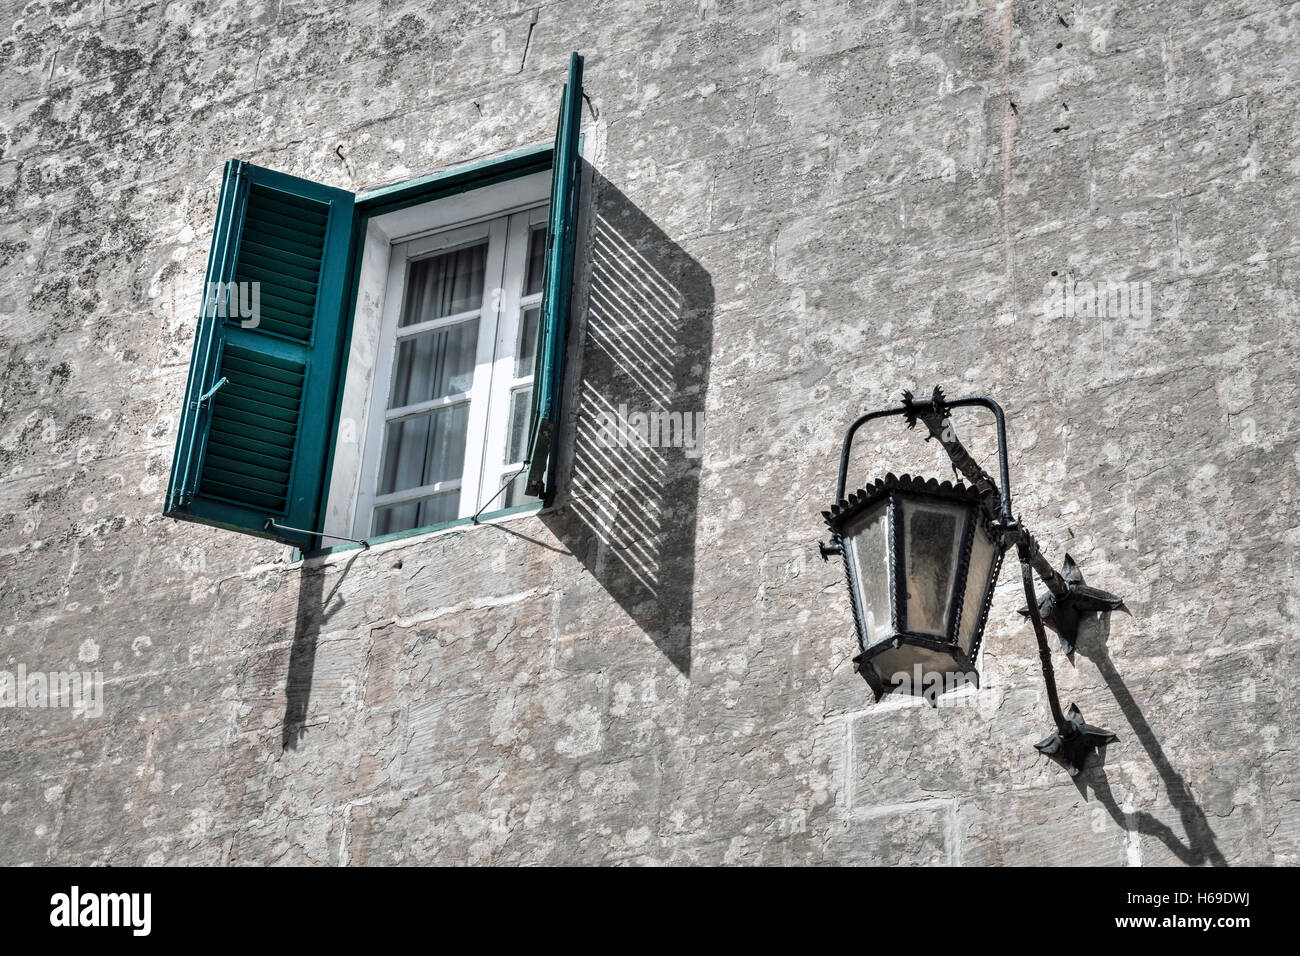 a window with green shutters and a lantern on an old house - Stock Image